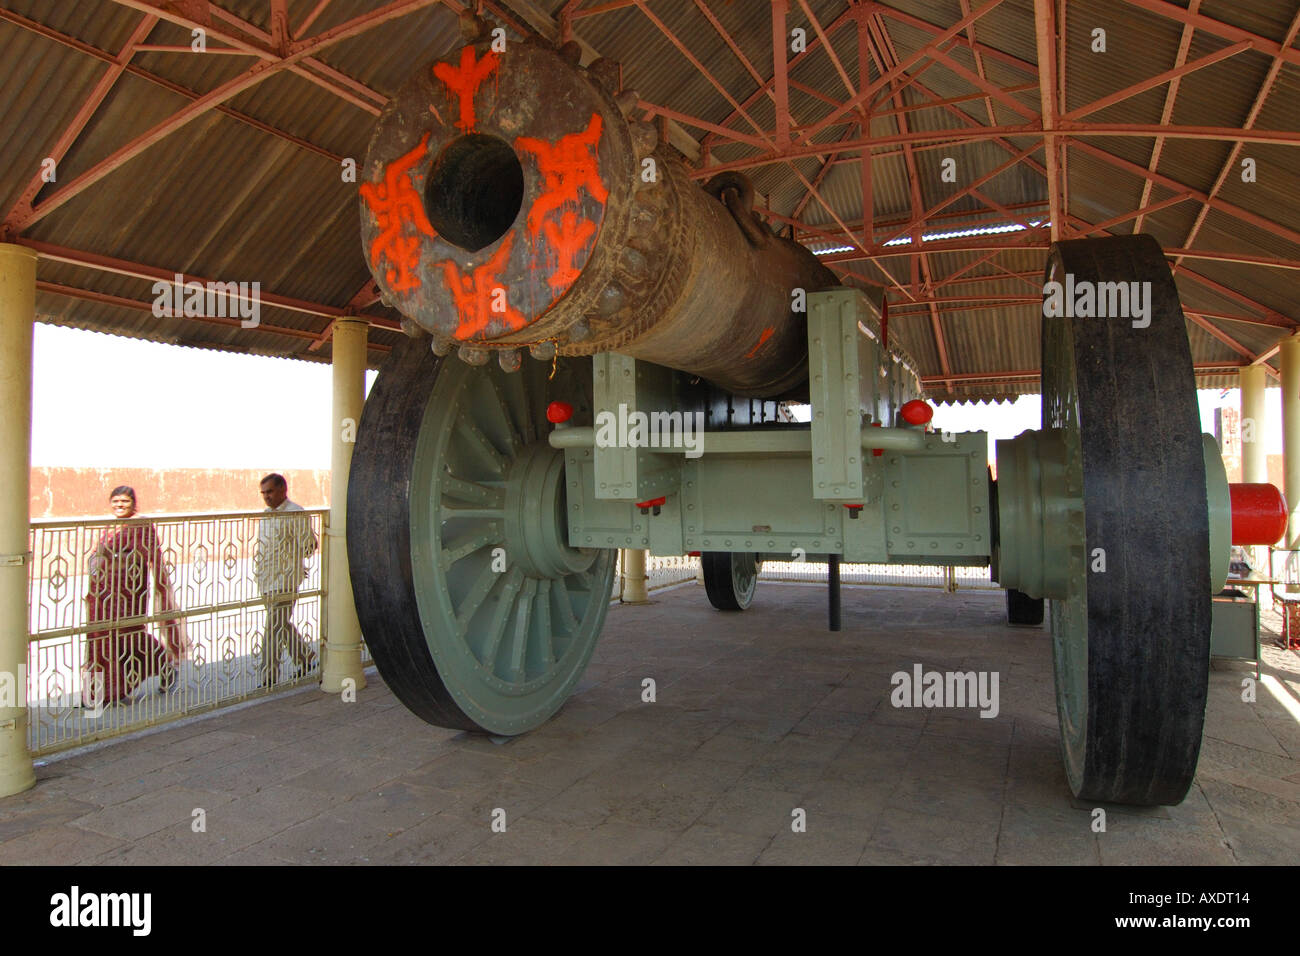 Huge cannon in Amber Fort, India - Stock Image